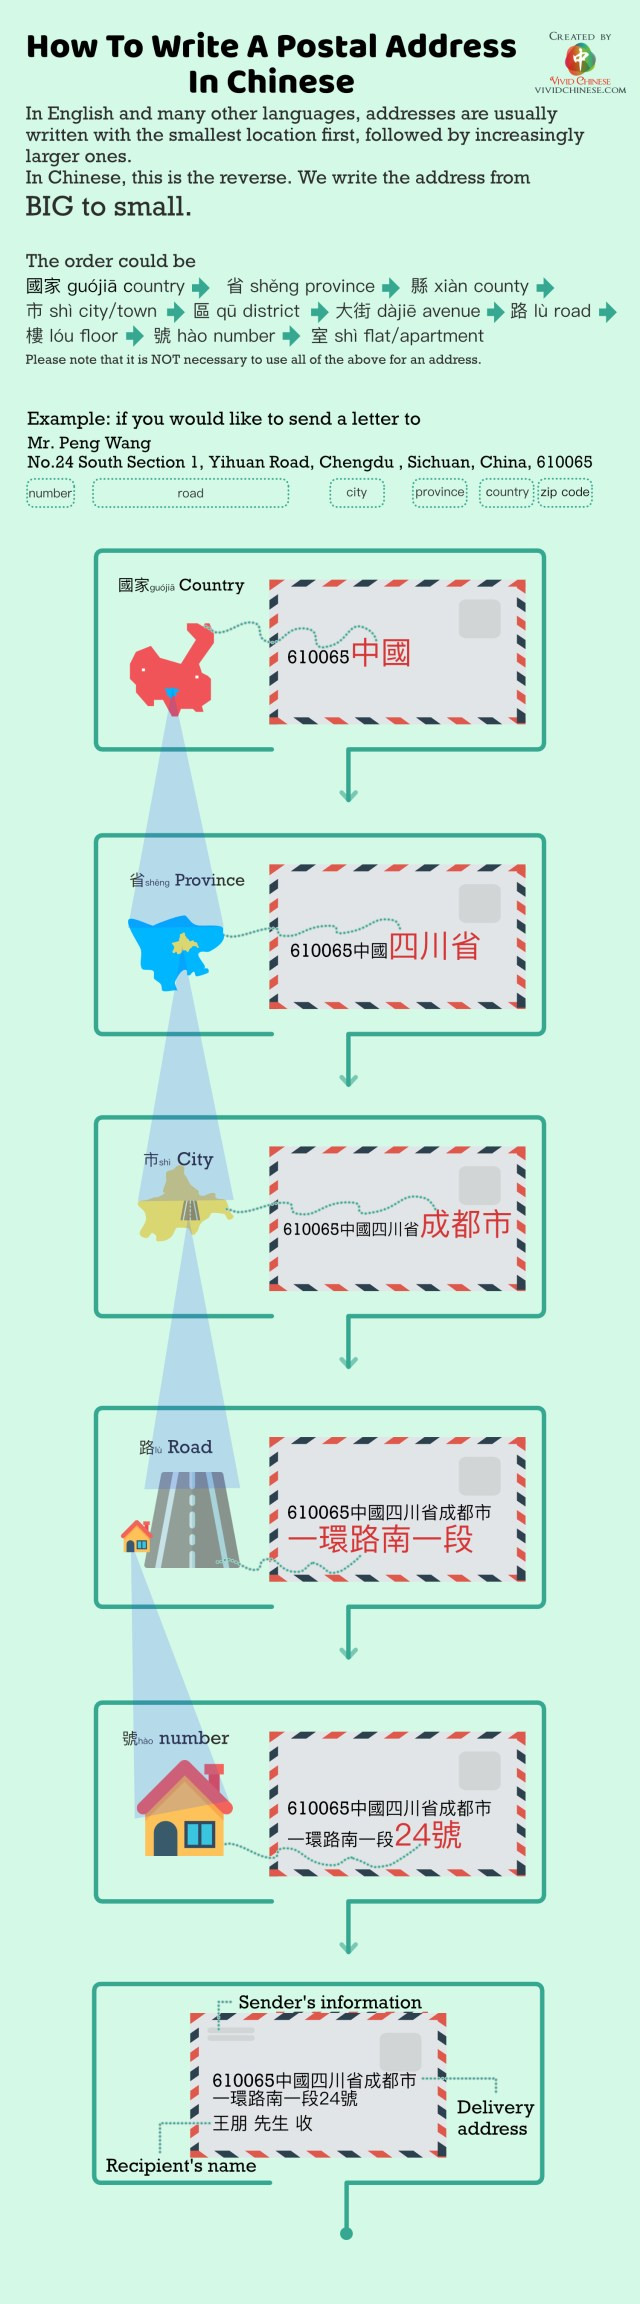 How To Write A Postal Address In Chinese - Vivid Chinese